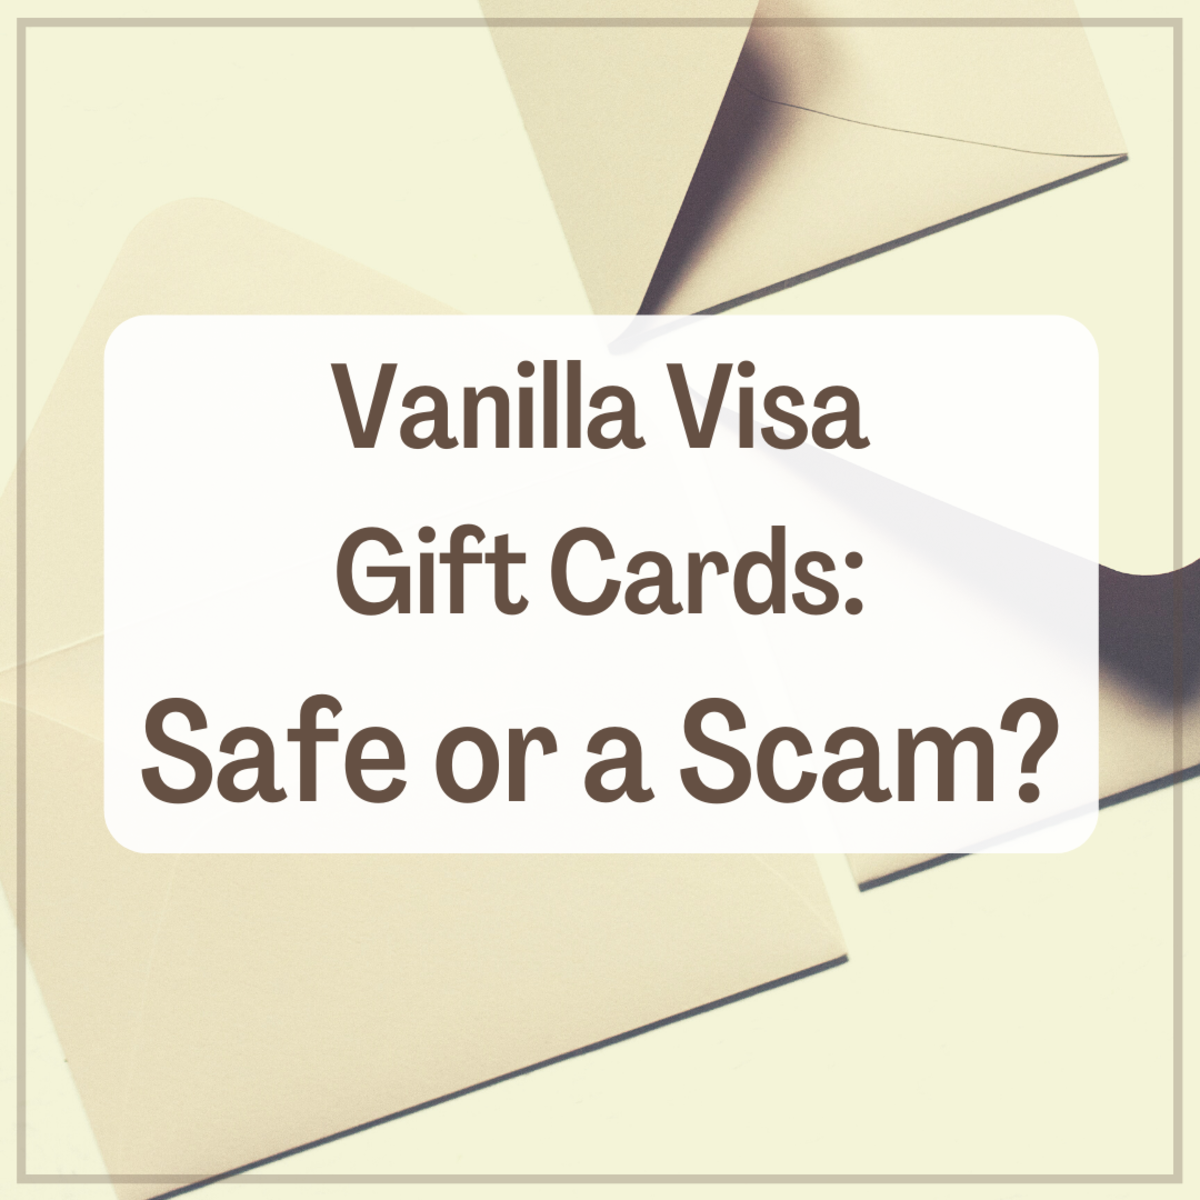 I review my experience trying to use a Vanilla Visa gift card and share some of the problems I encountered. I hope this information helps other consumers make informed decisions when buying prepaid gift cards.